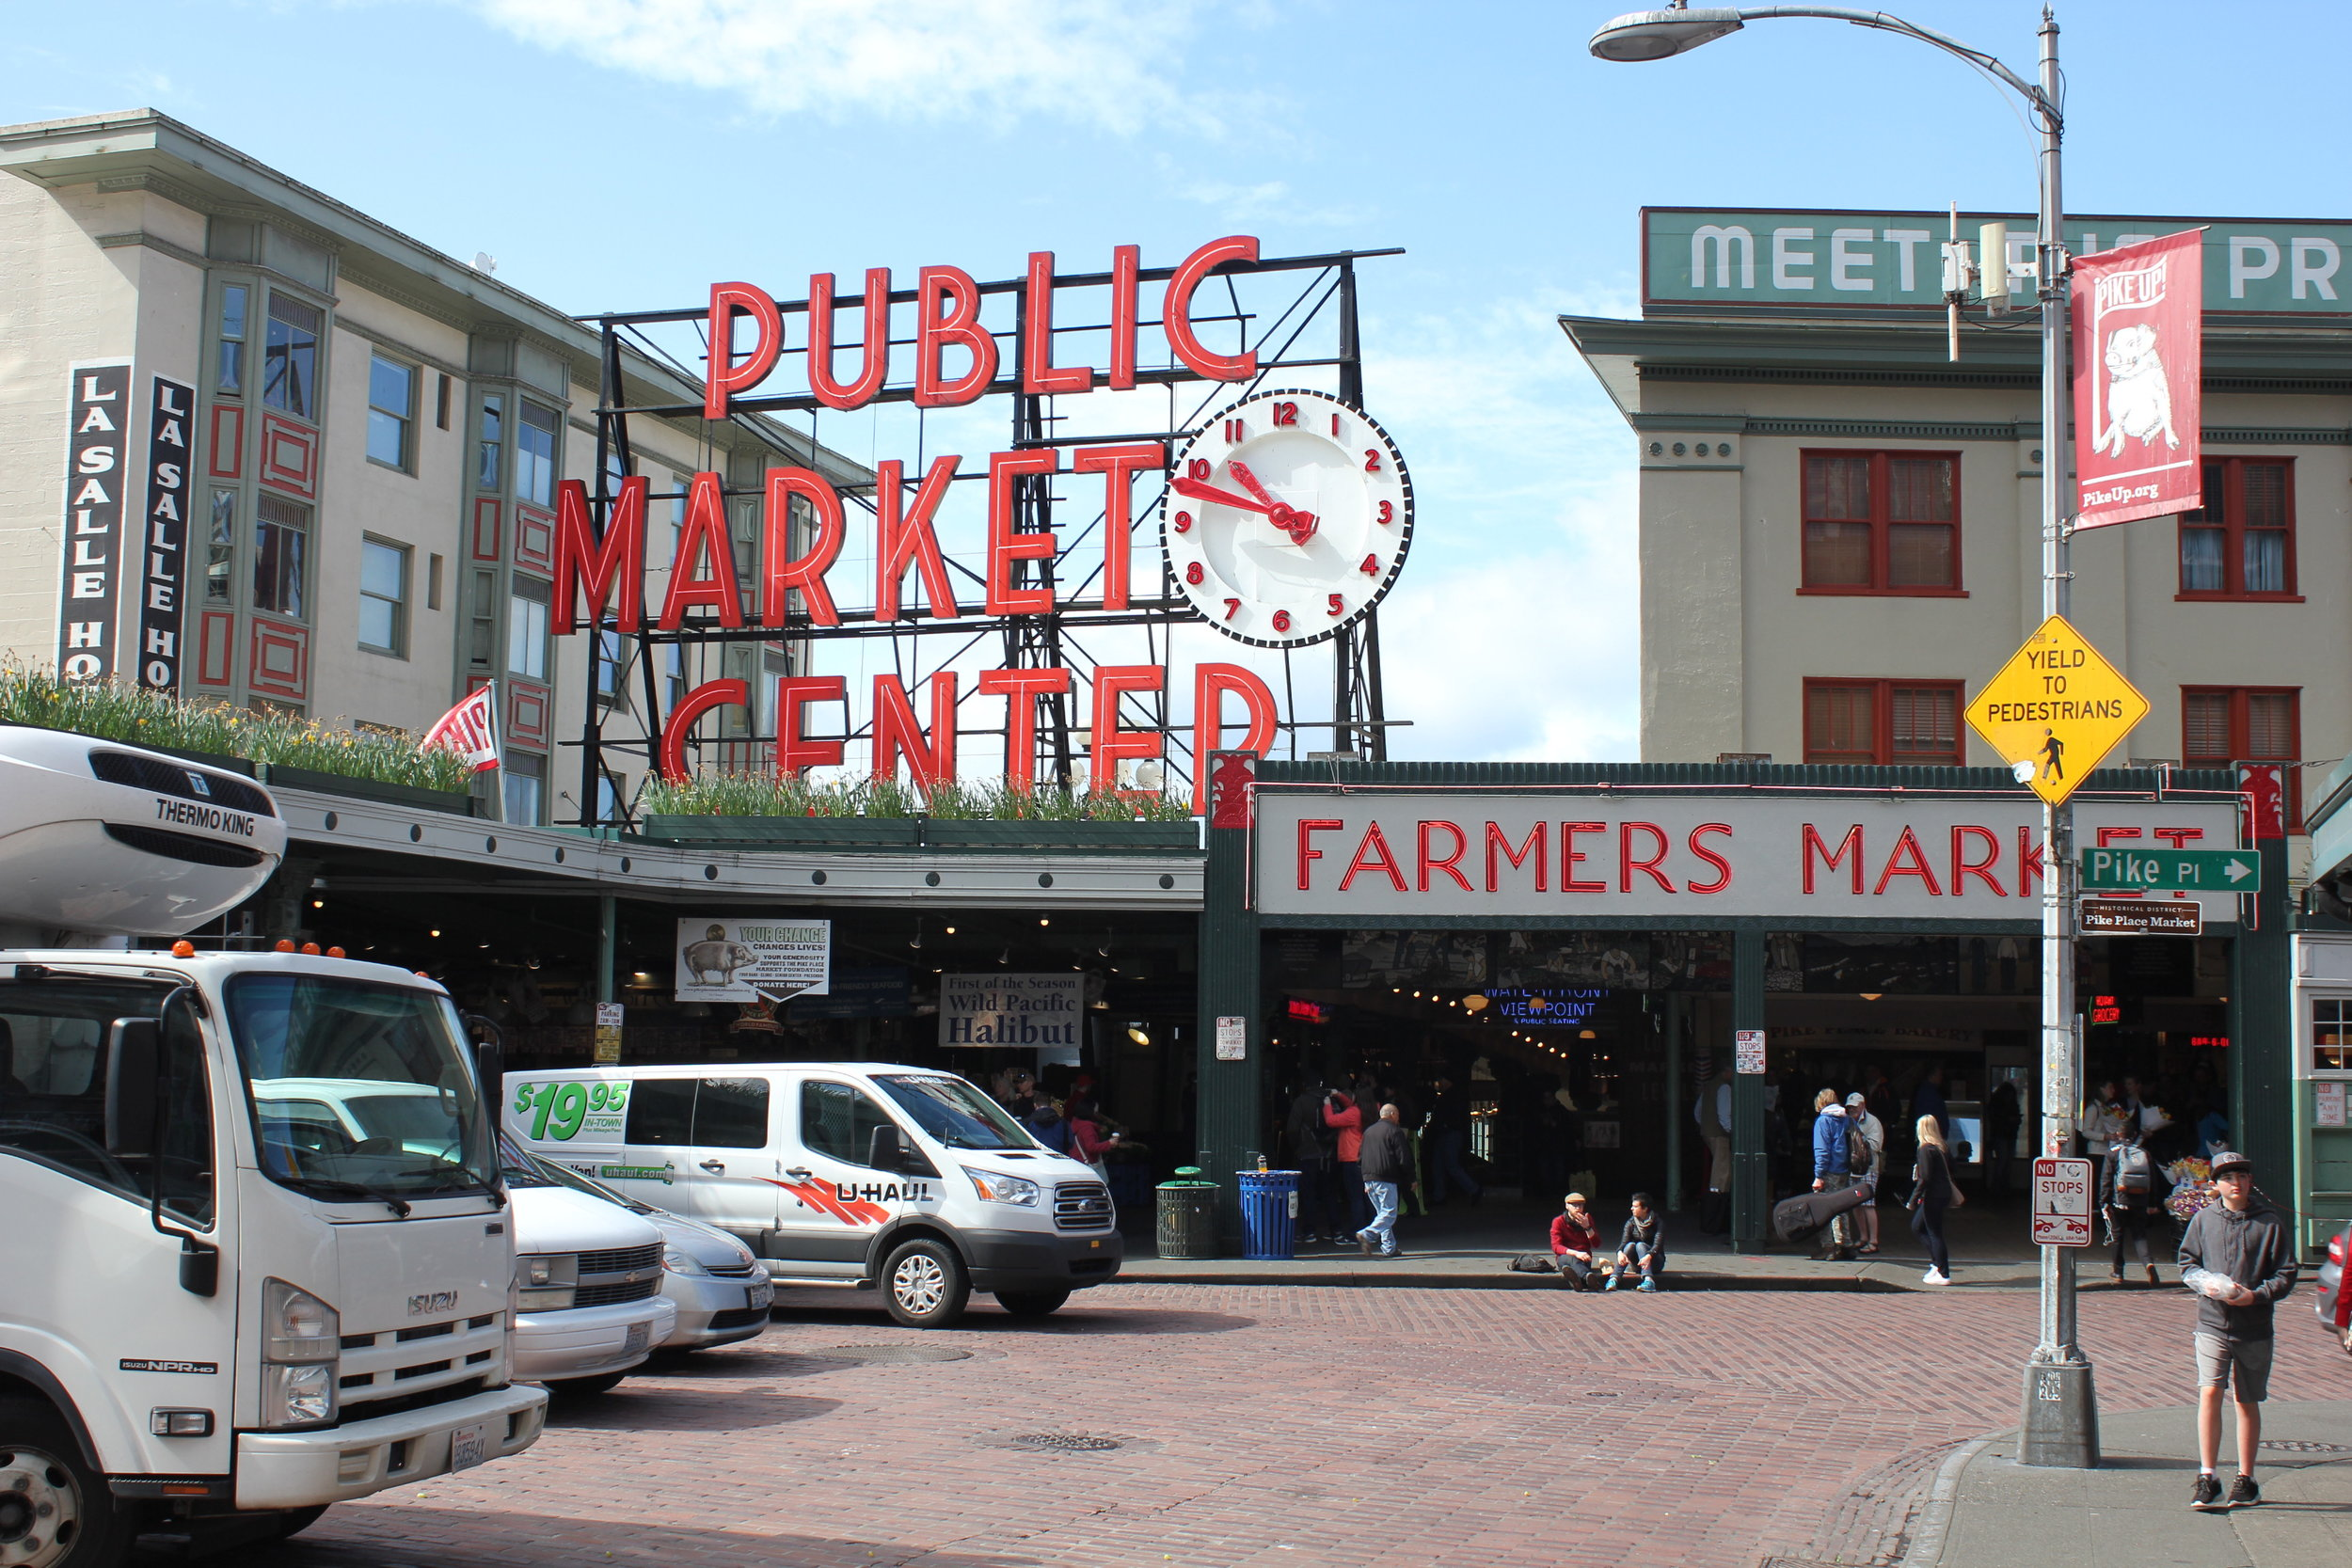 Pike Place Market – Public Market Center sign and clock